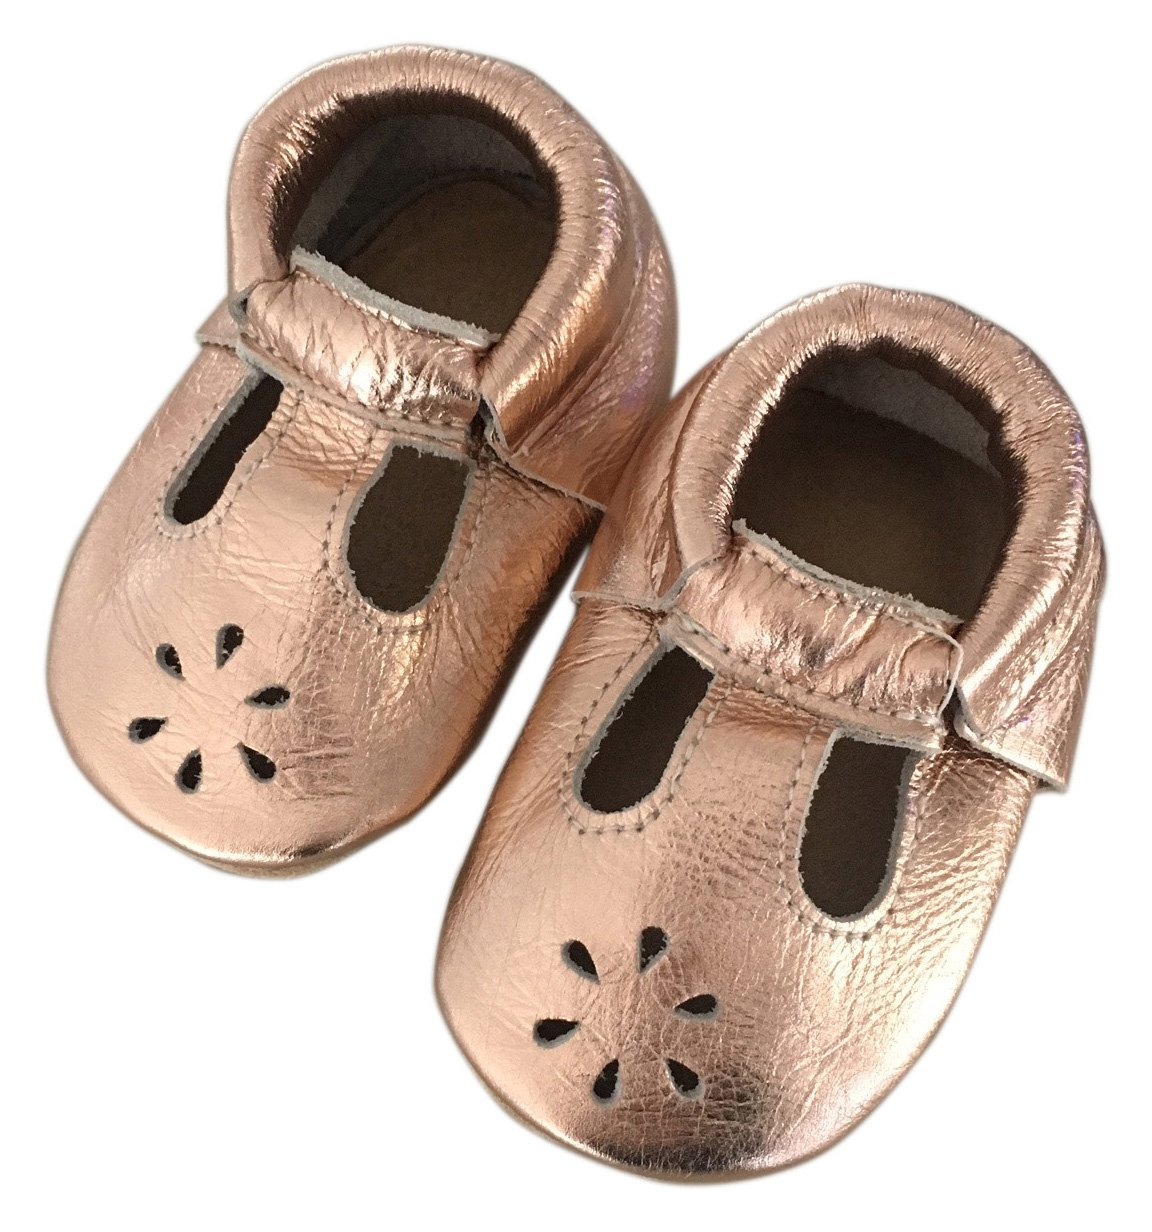 Lucky Love Baby & Toddler Soft Sole Prewalker Skid Resistant Boys & Girls Shoes (6-12 Months, T-Strap Rose Gold) by Lucky Love (Image #3)